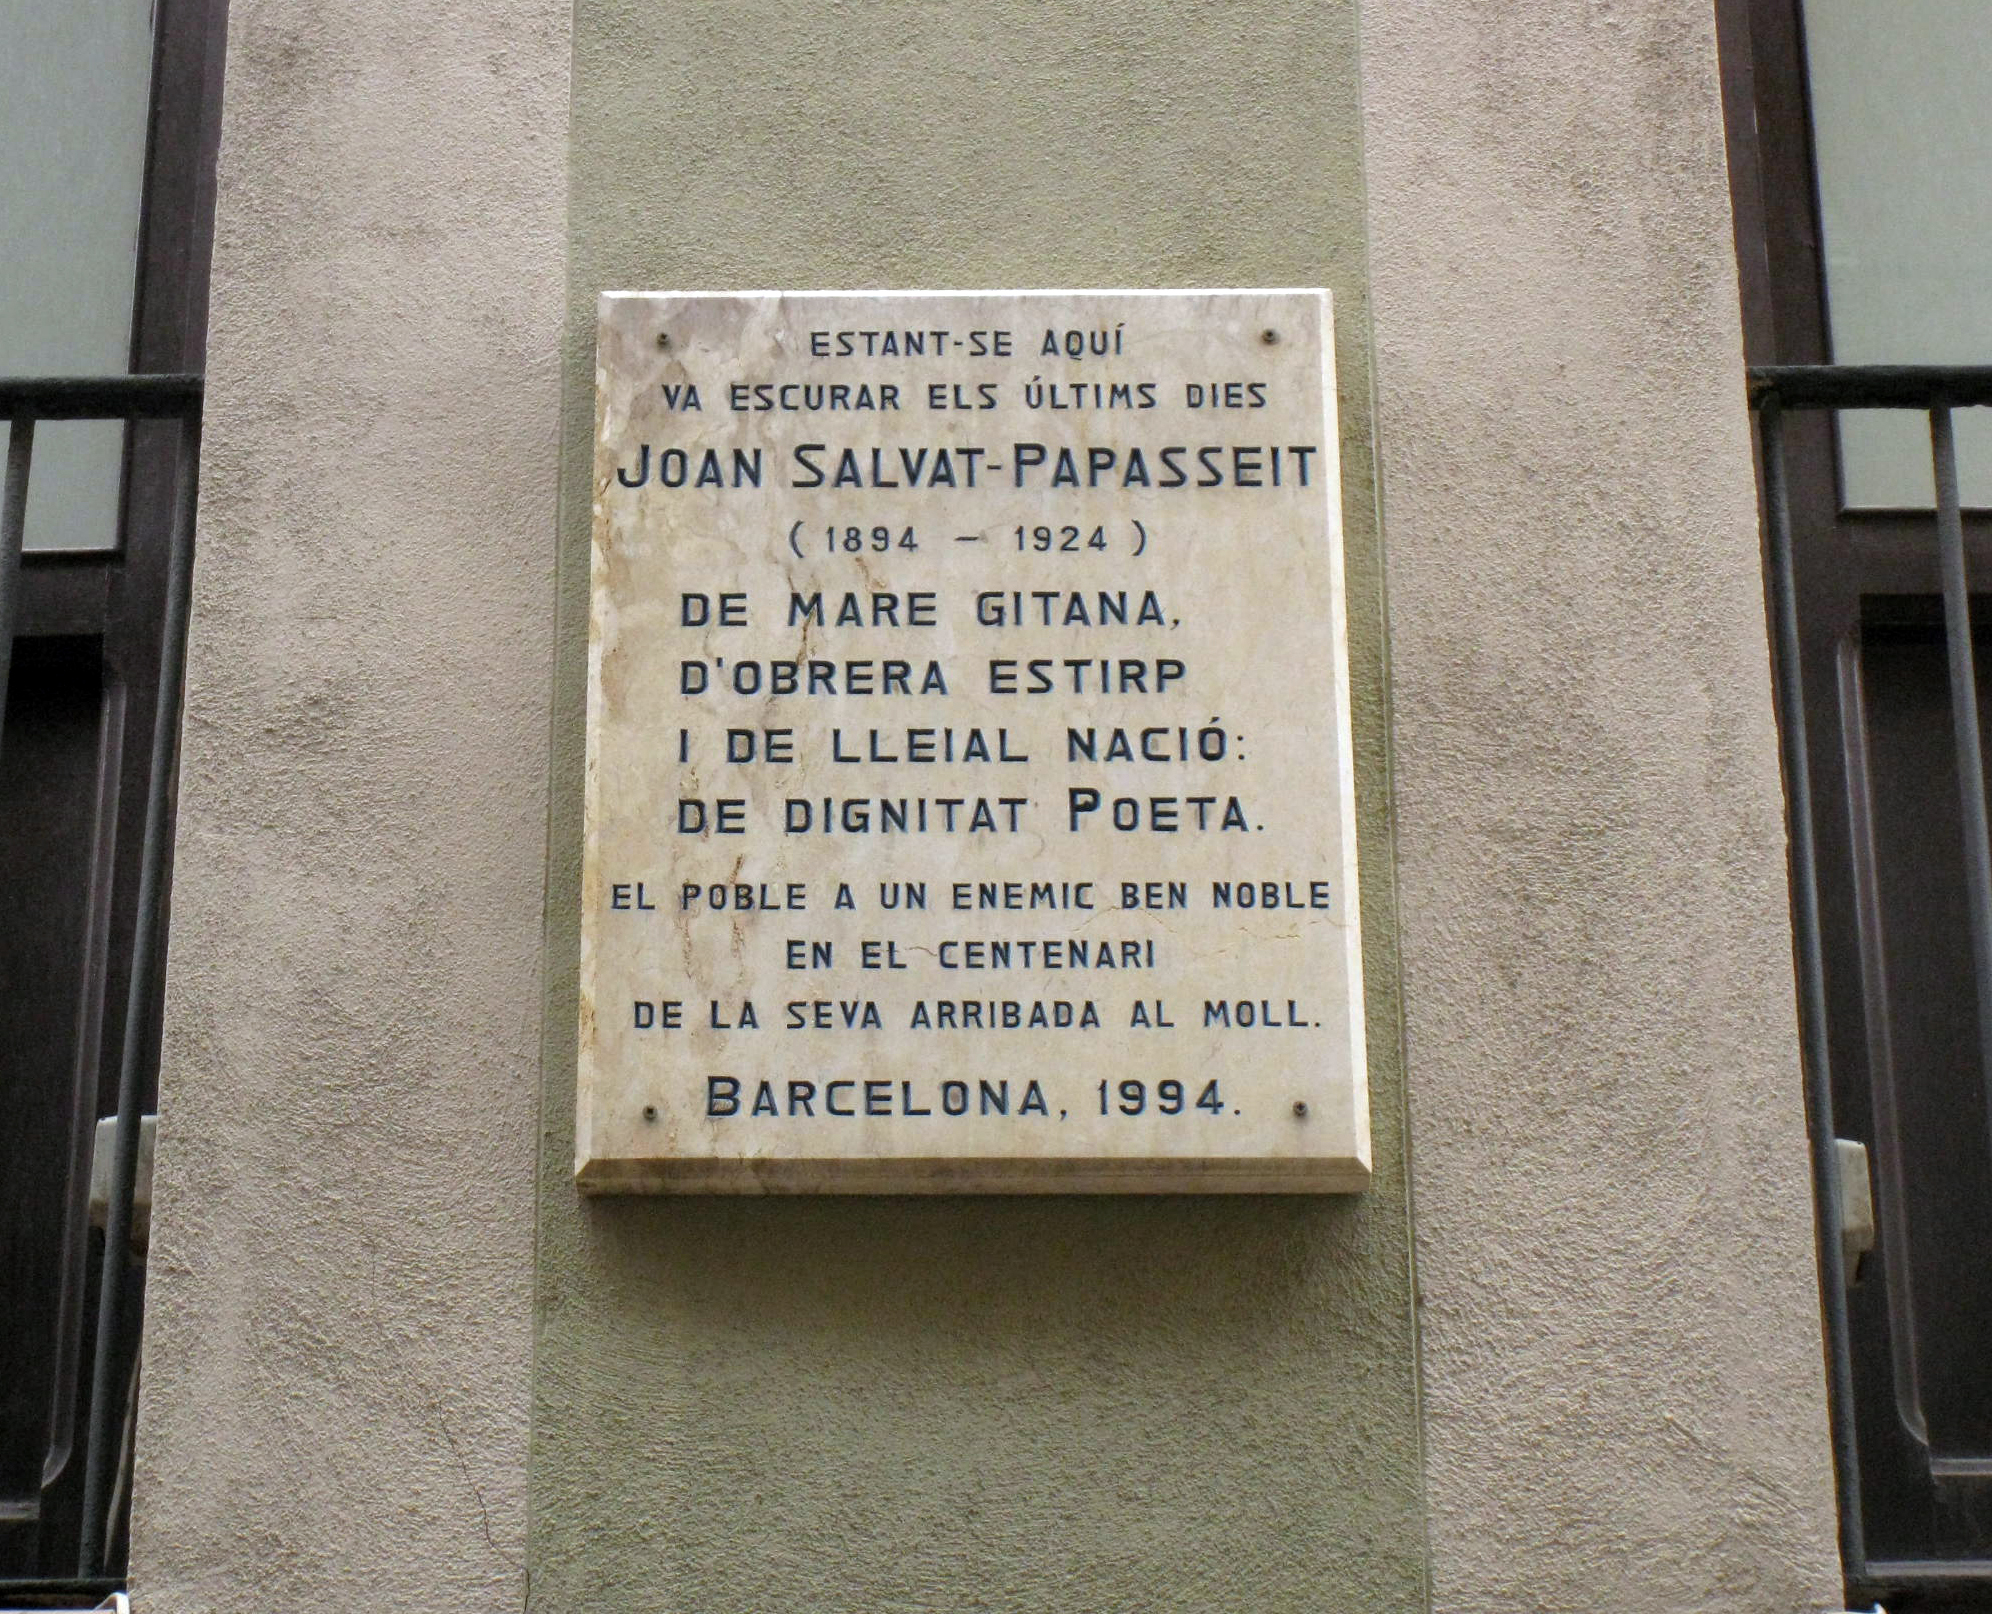 Placa en Barcelona recordando a Salvat-Papasseit